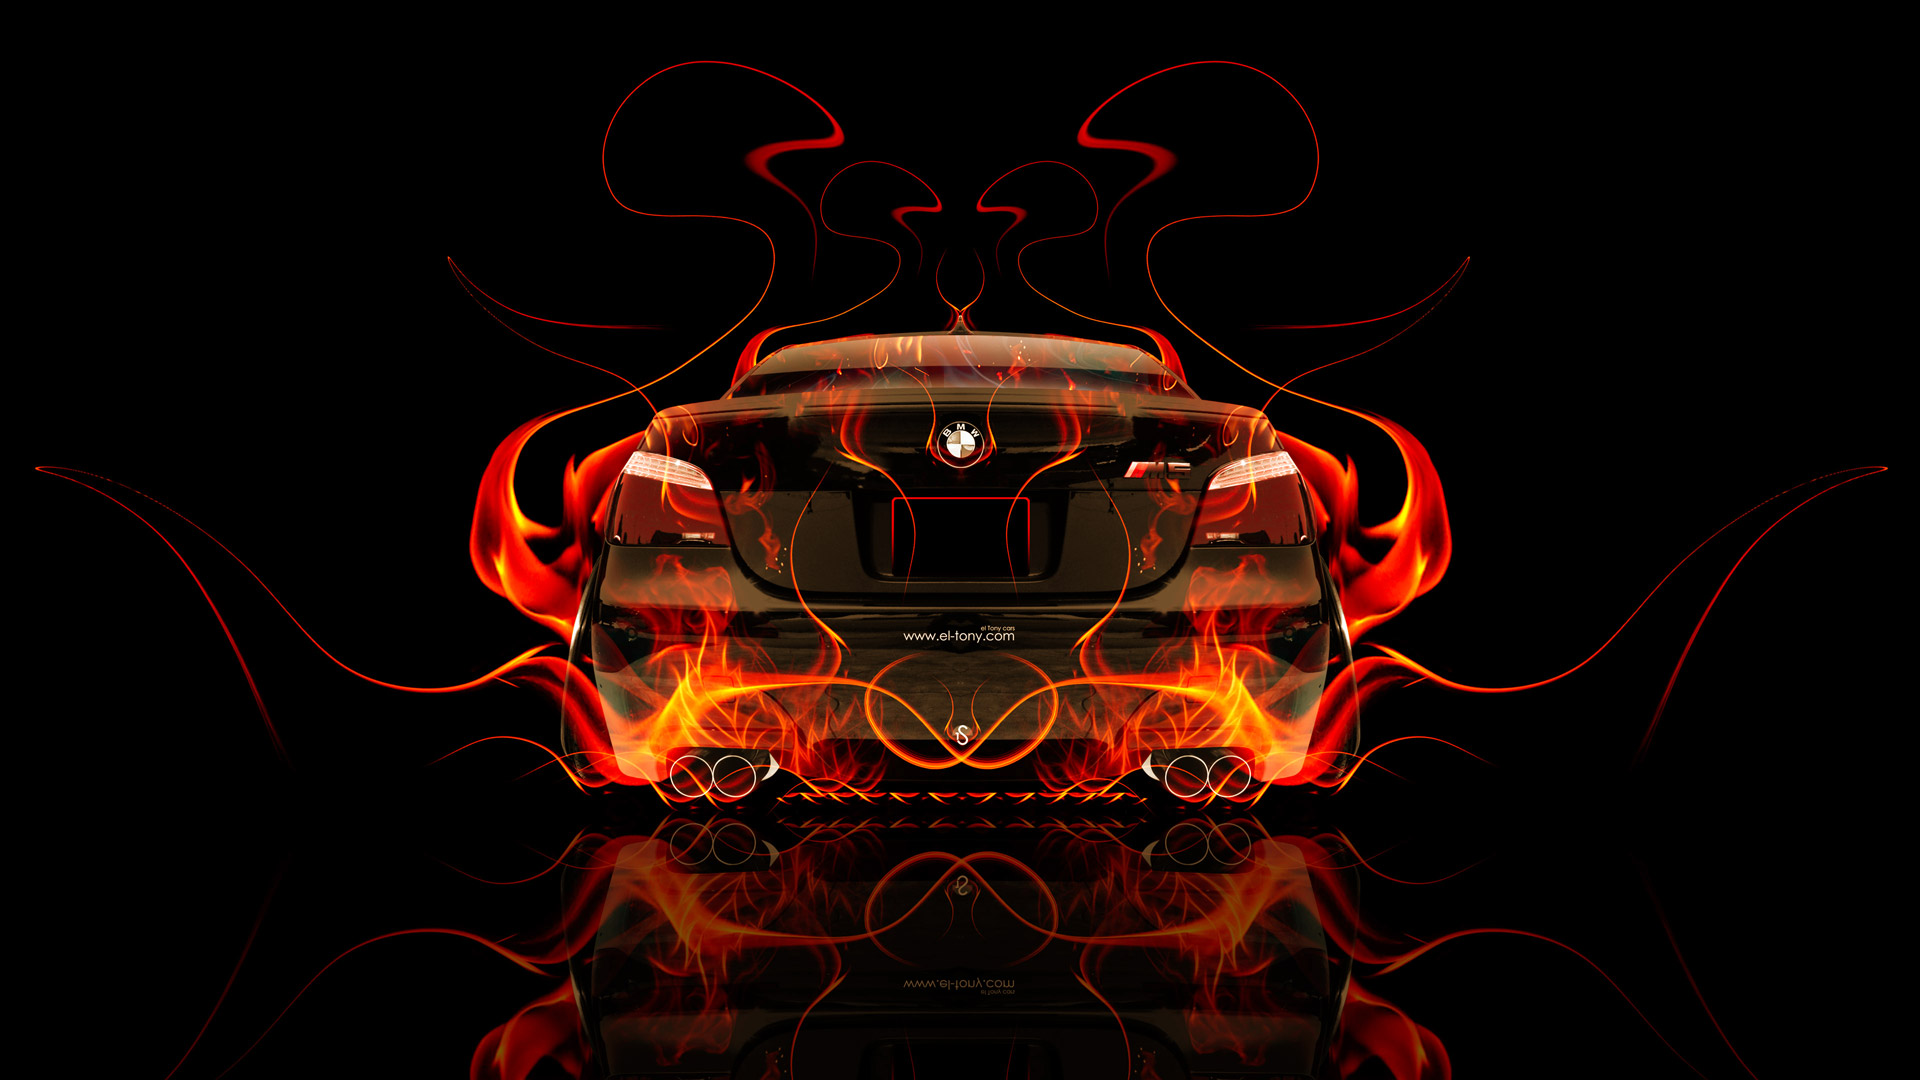 Beau BMW M5 E60 Back Fire Abstract Car 2014